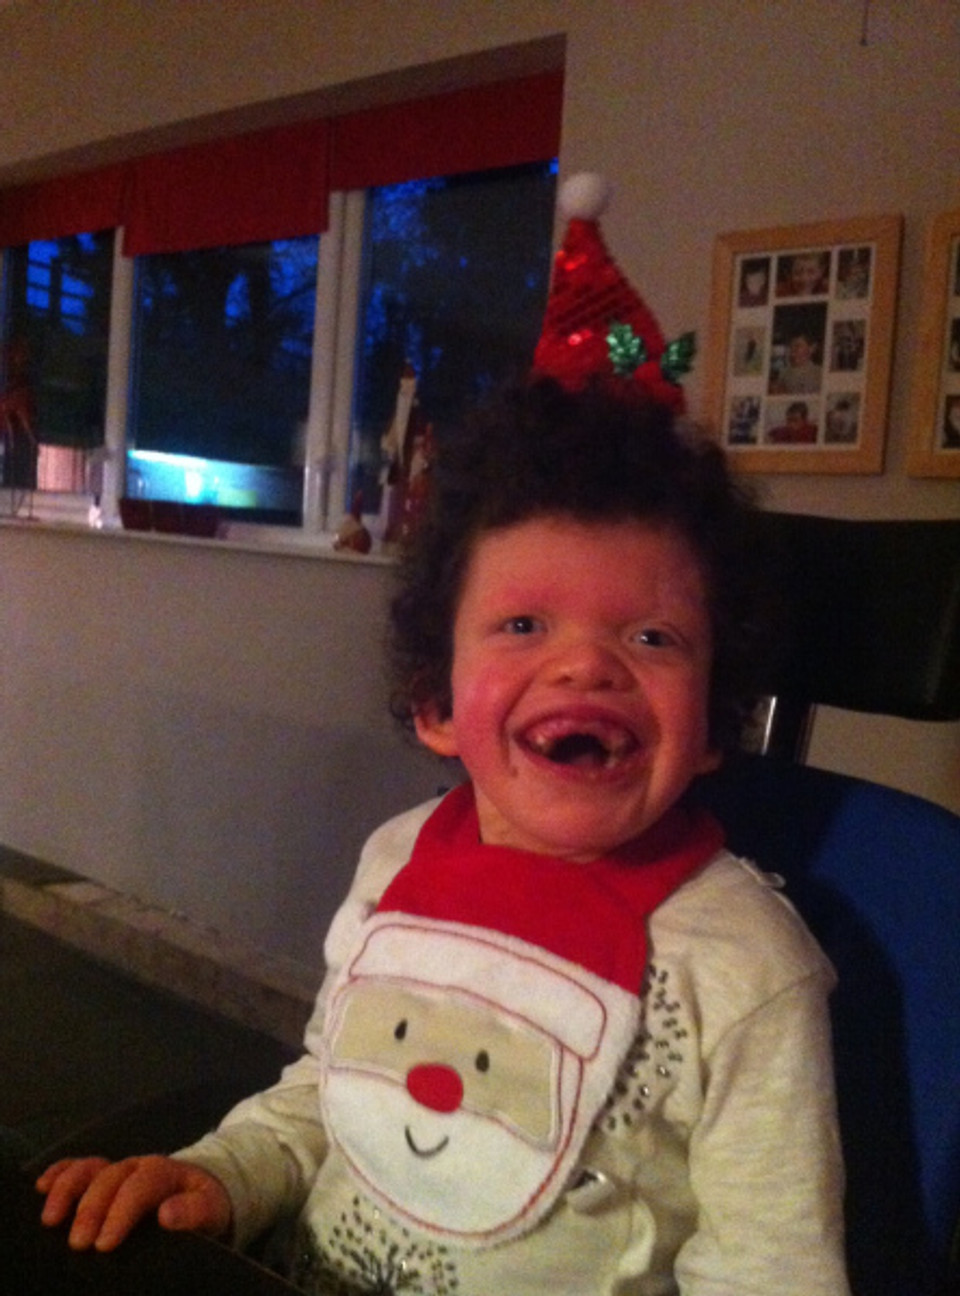 Carys in her Christmas gear beaming at the camera and enjoying her Christmas dinner.